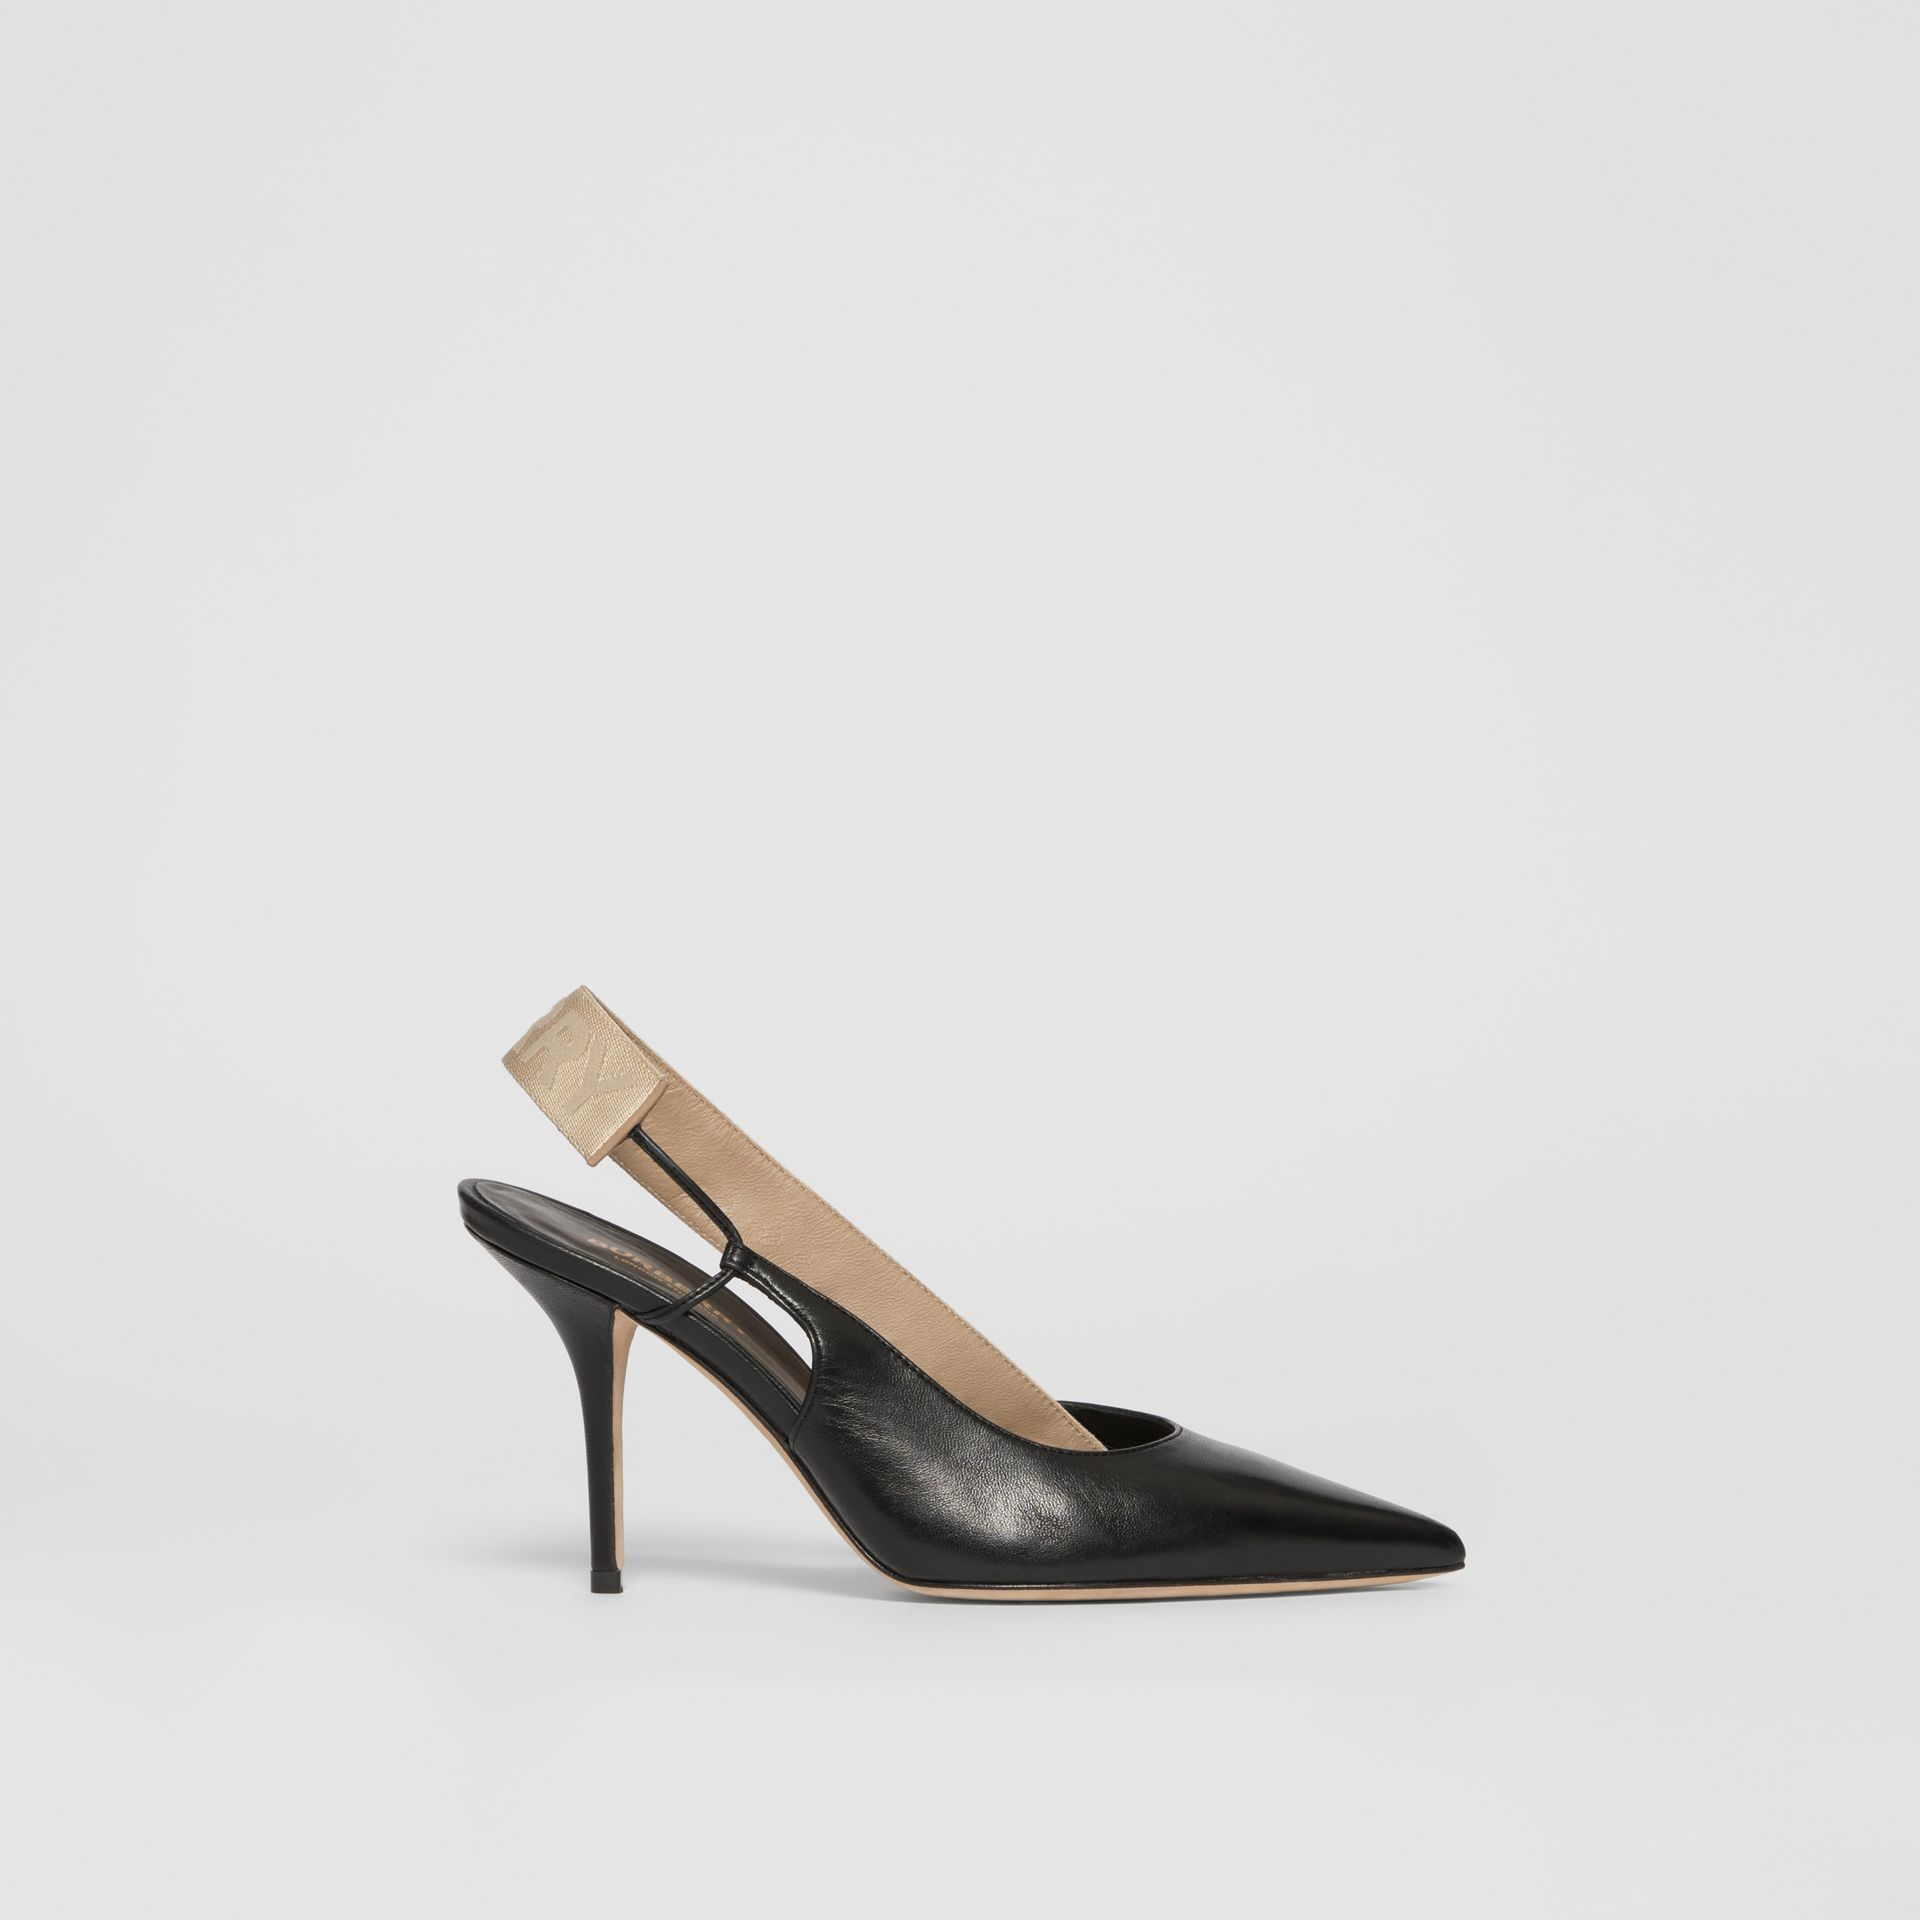 Logo Detail Lambskin Slingback Pumps in Black - Women | Burberry - gallery image 4